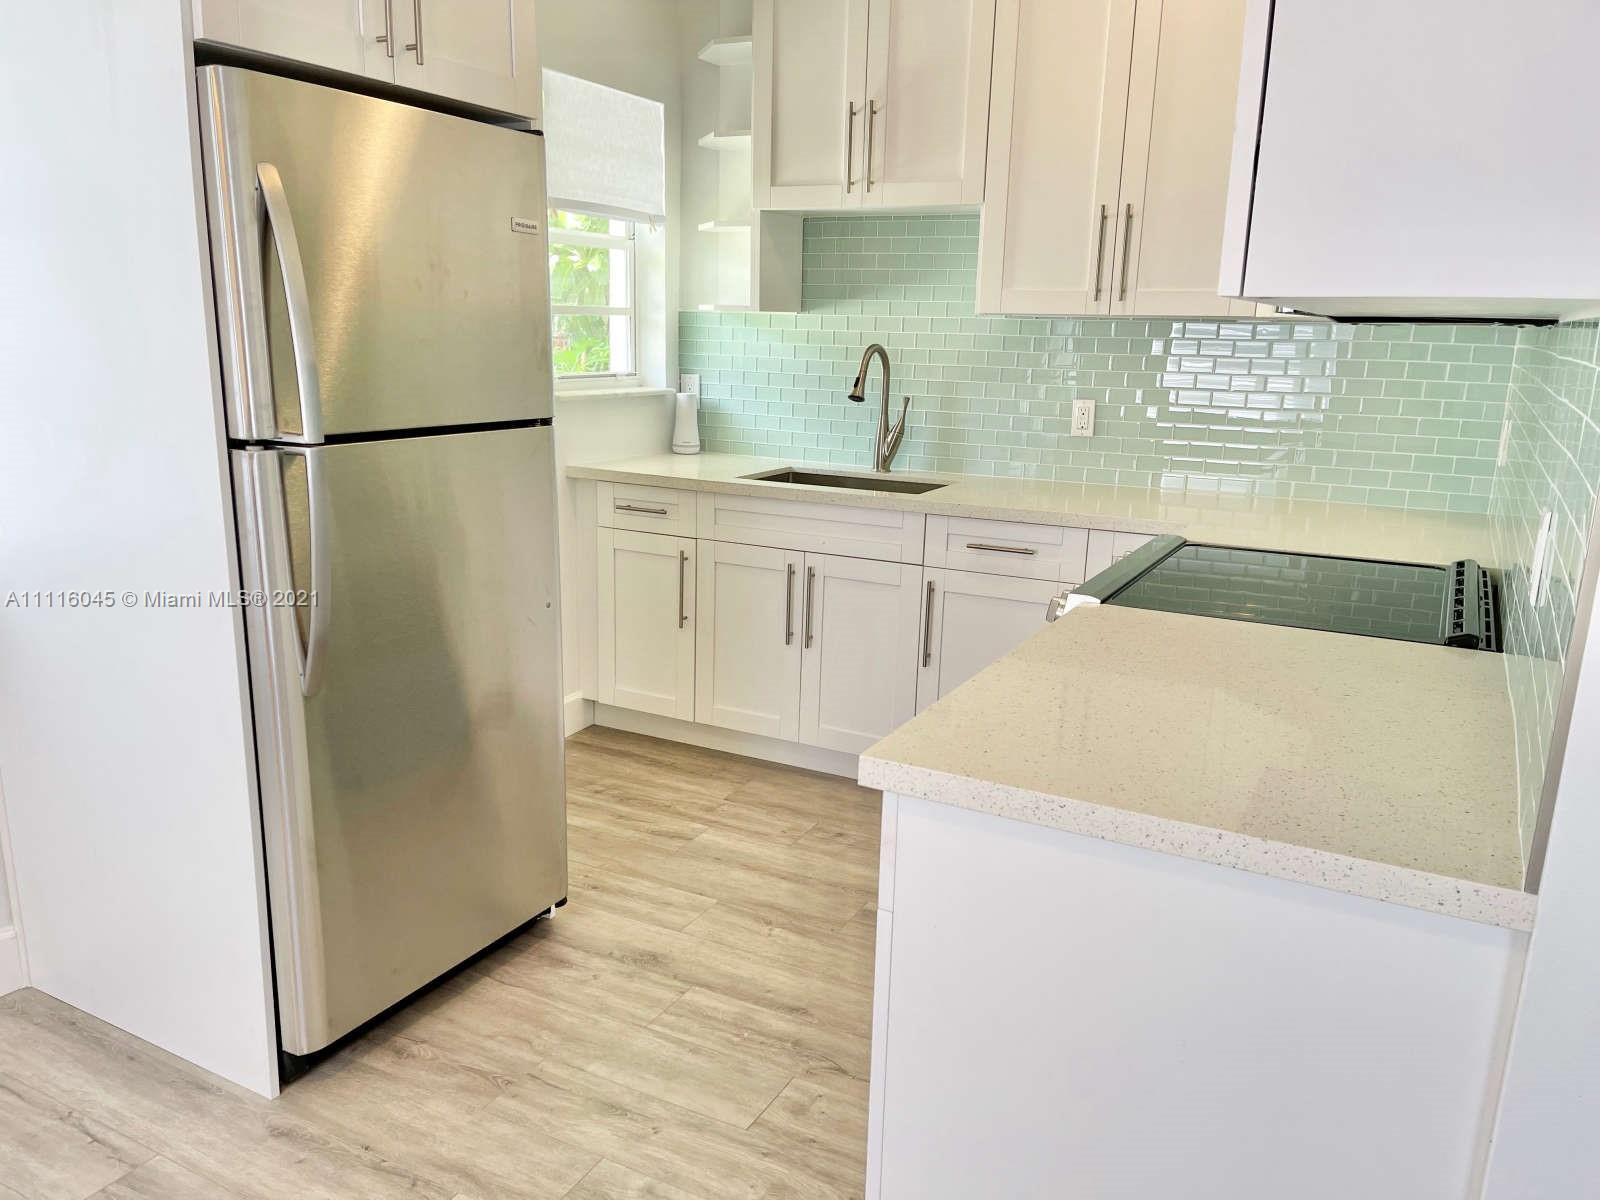 Single Family Home,For Sale,1947 NW 42nd St, Miami, Florida 33142,Brickell,realty,broker,condos near me